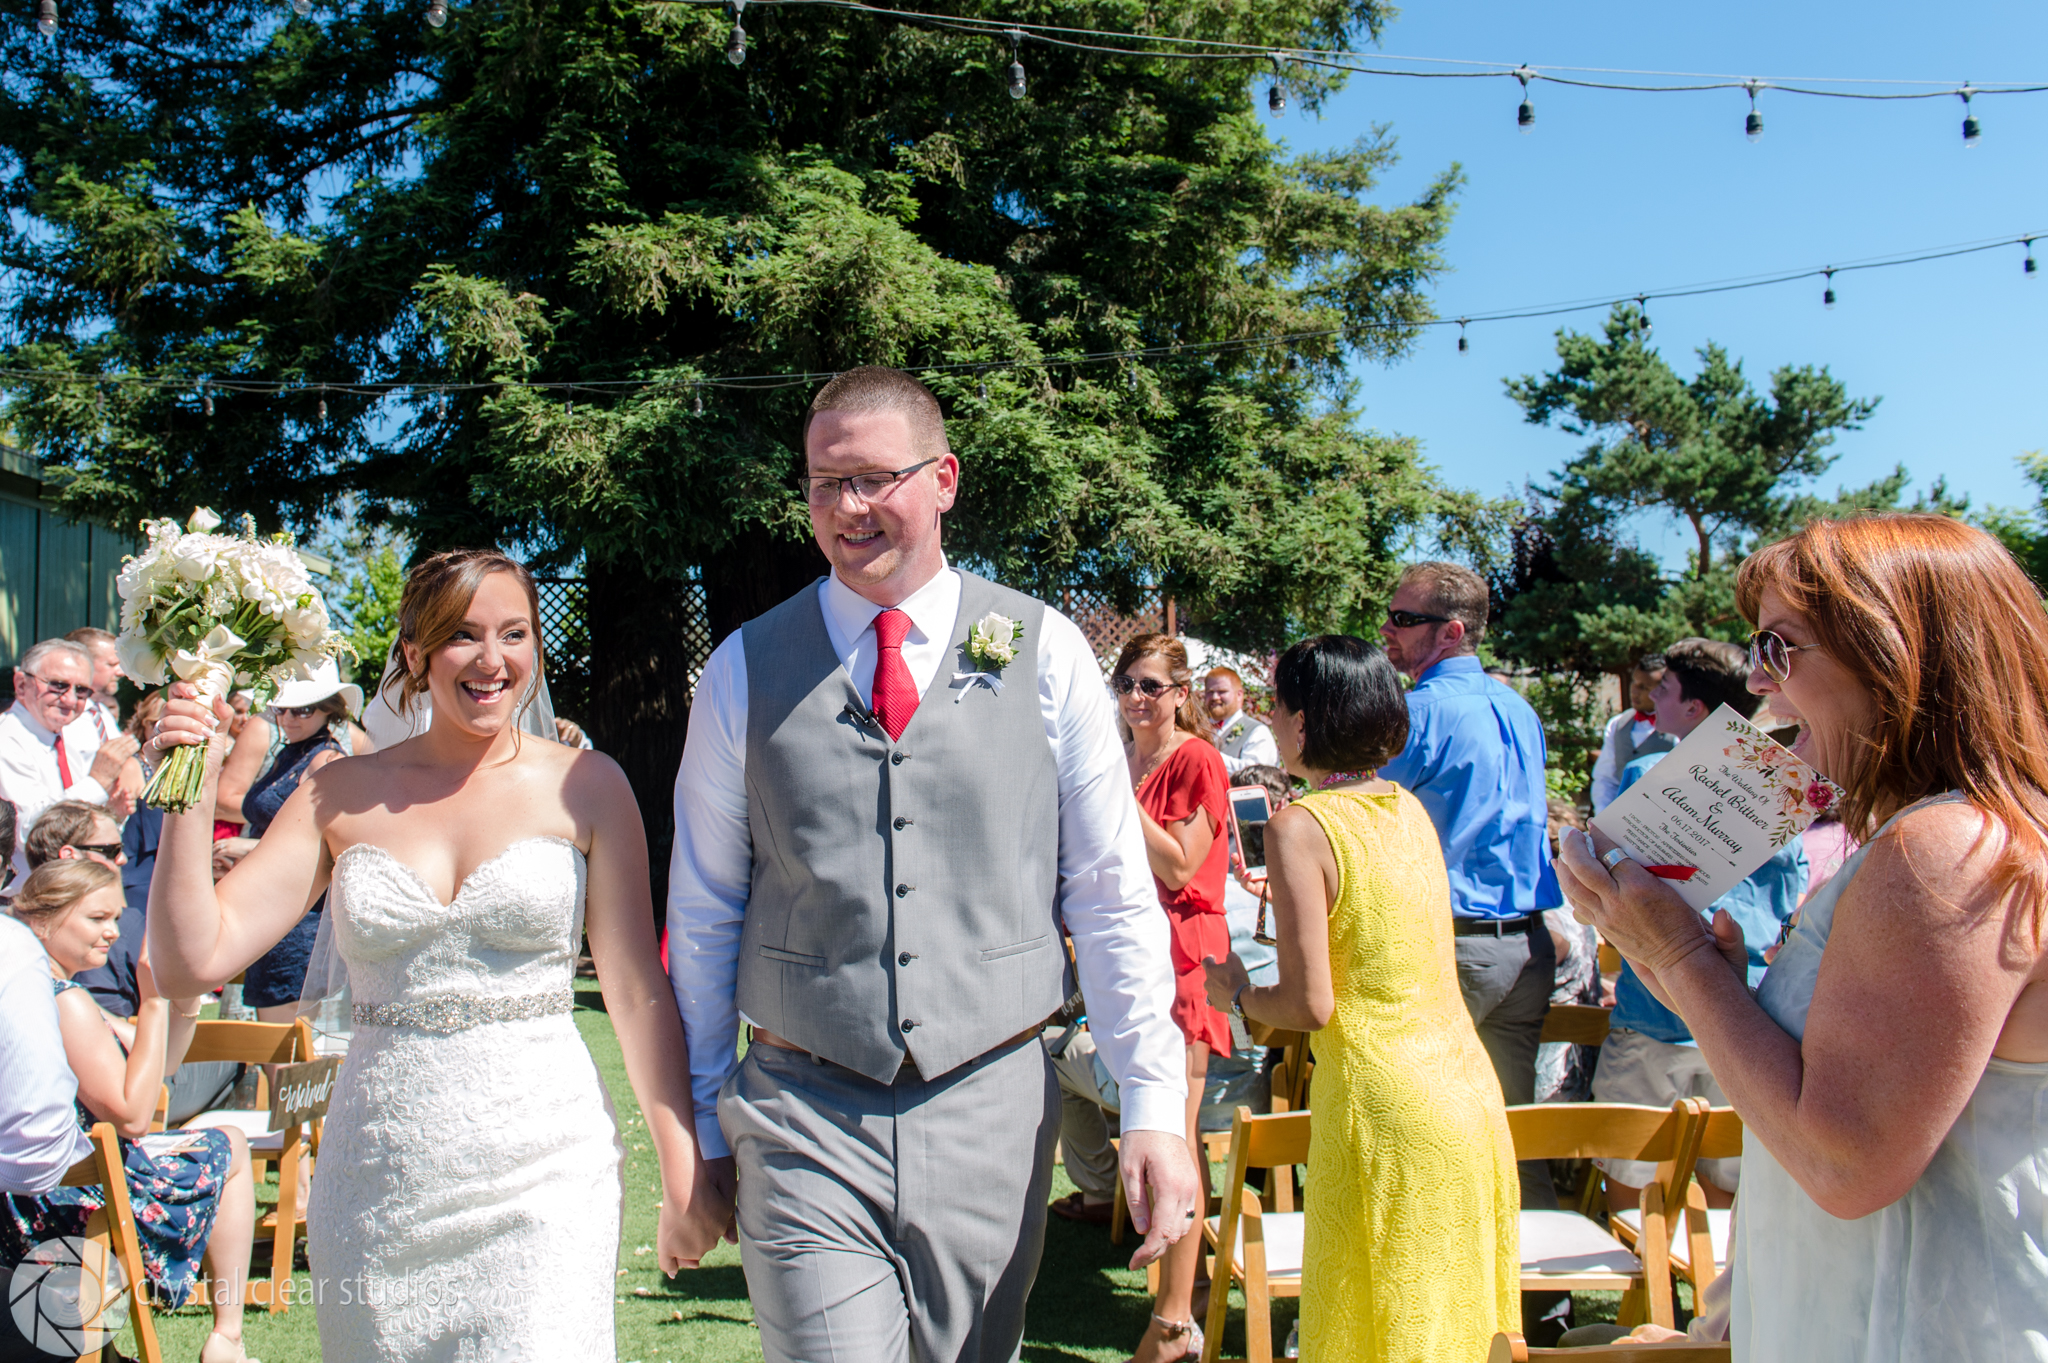 Wedding Ceremony &Reception Package $1195 - - Everything in the Reception Package, PLUS- 1 additional hour of coverage- 1/2 hour Pre-ceremony music (5 1/2 hrs total coverage)- Wireless Microphone for Officiant- 2nd Sound system for Ceremony- 1 Additional Custom Song Edit (Up to 2 total)